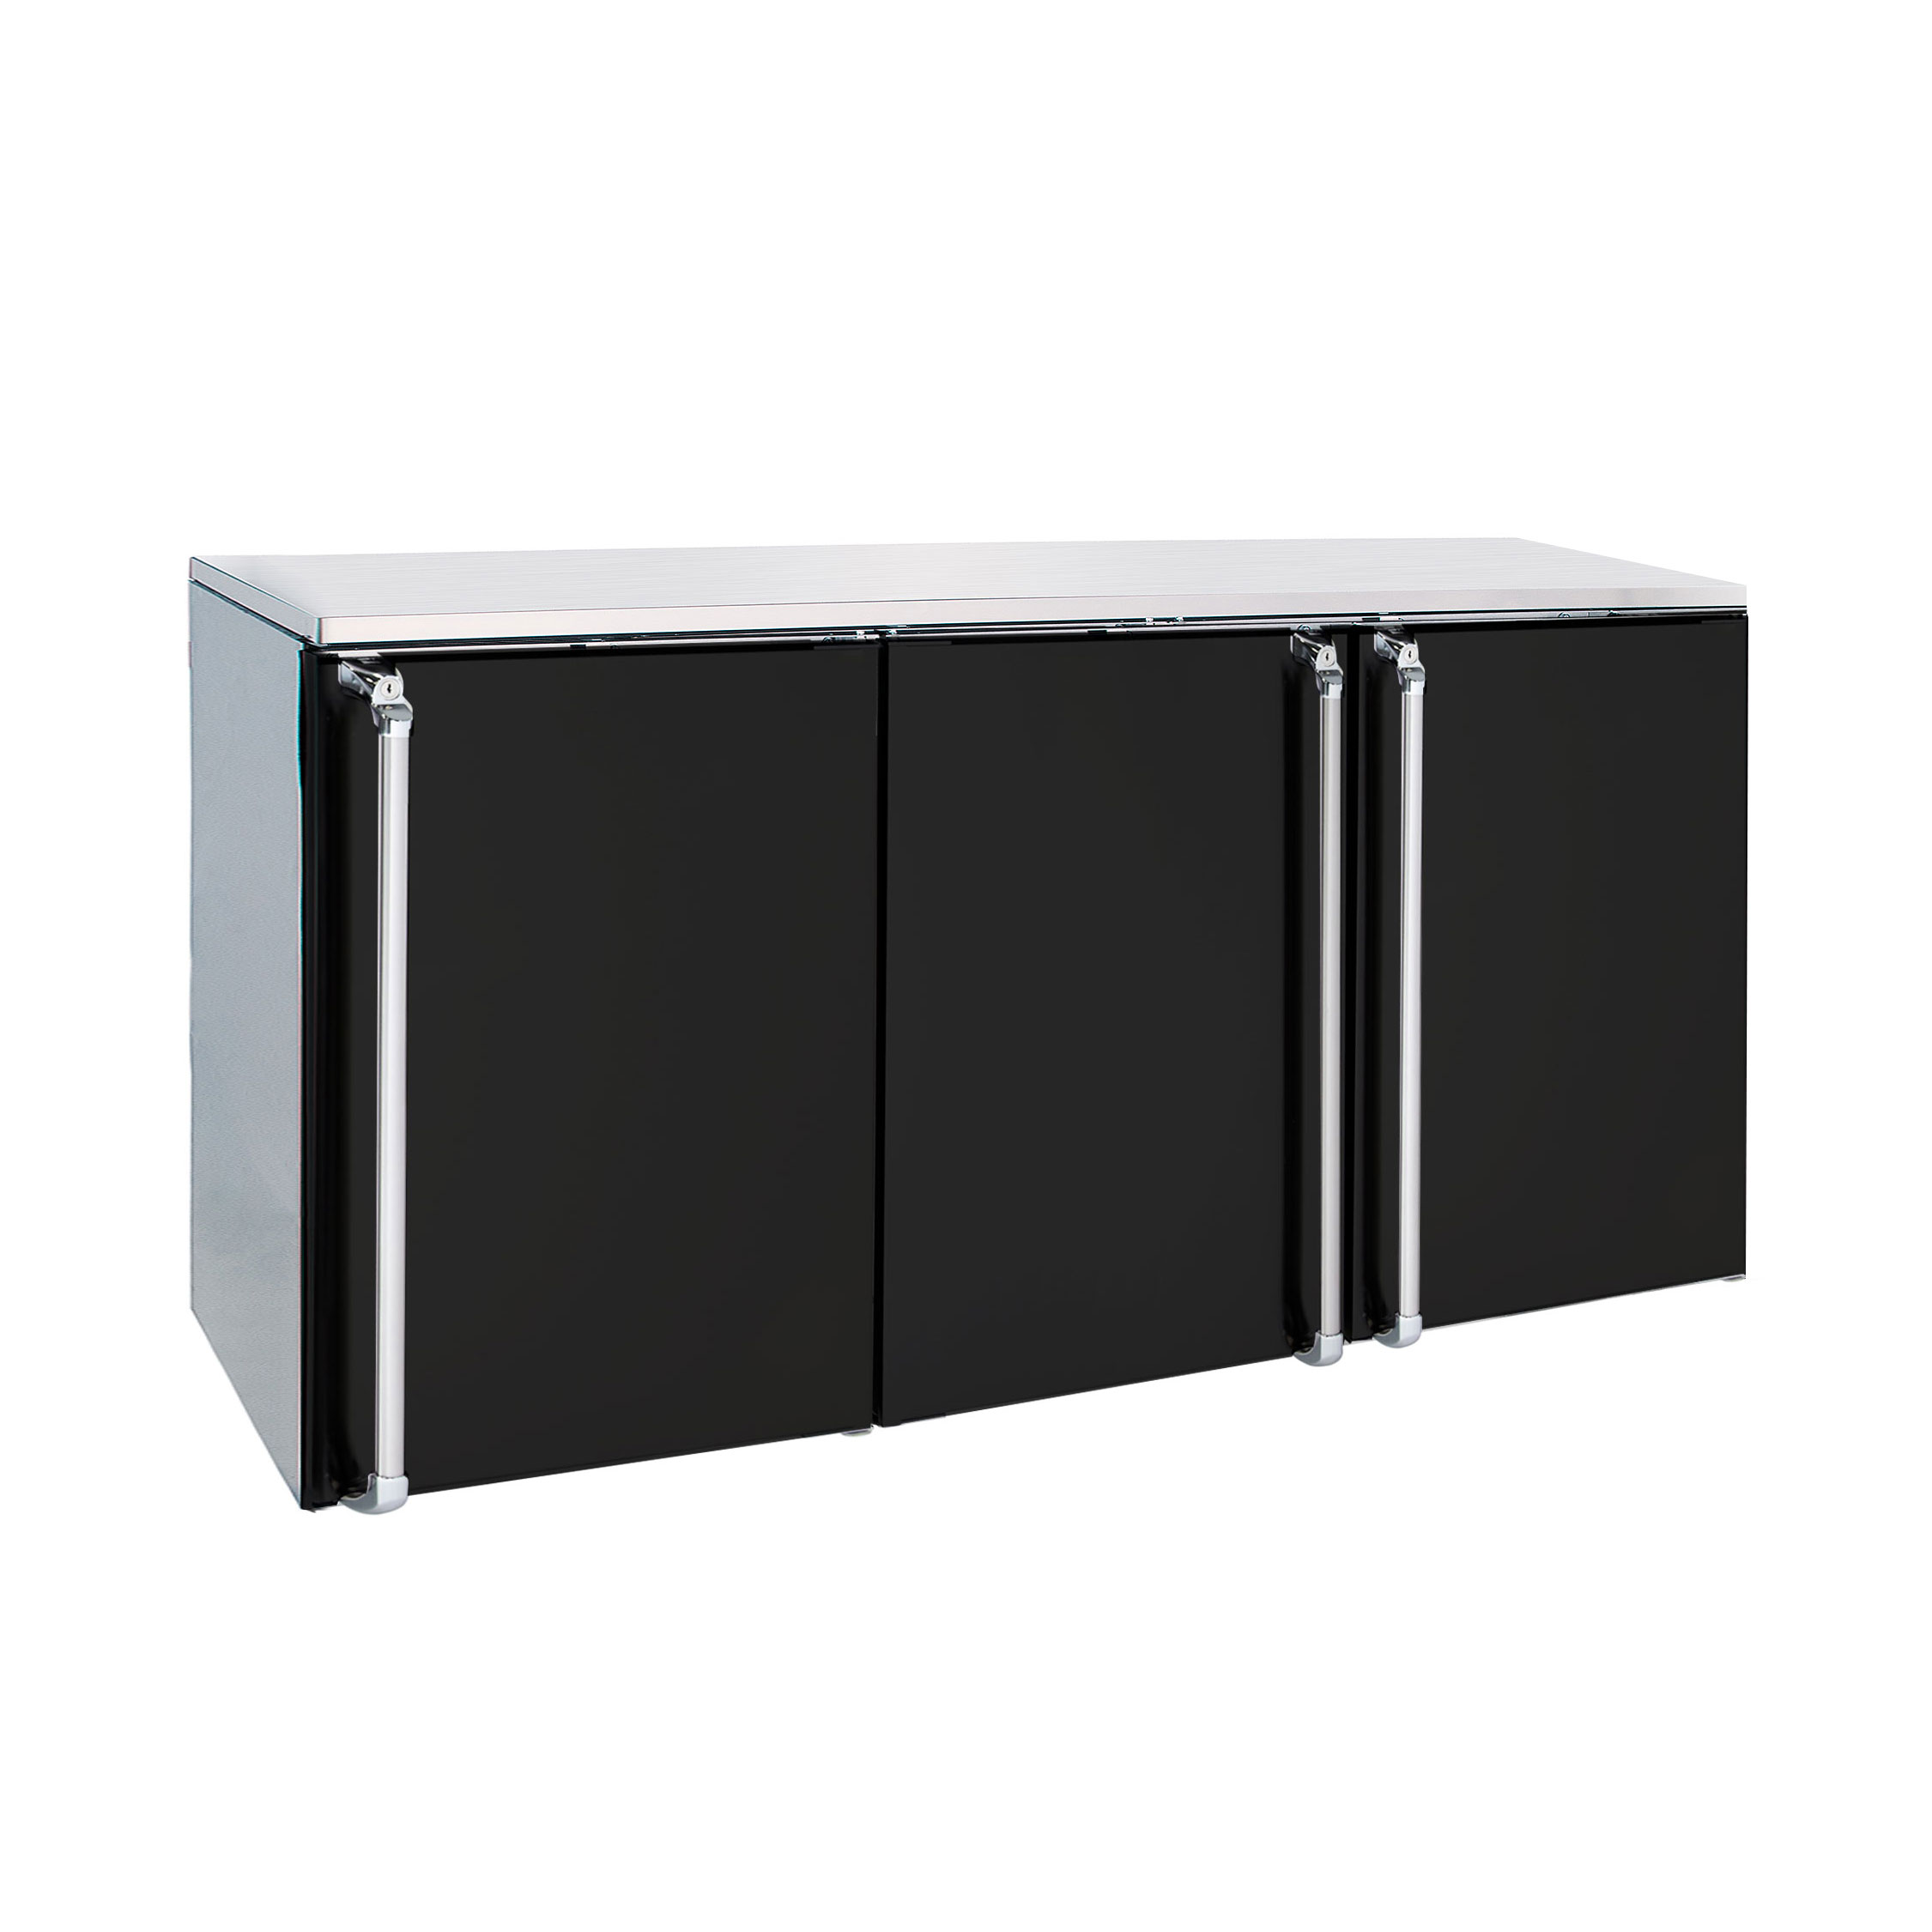 Krowne Metal BR72 back bar cabinet, refrigerated